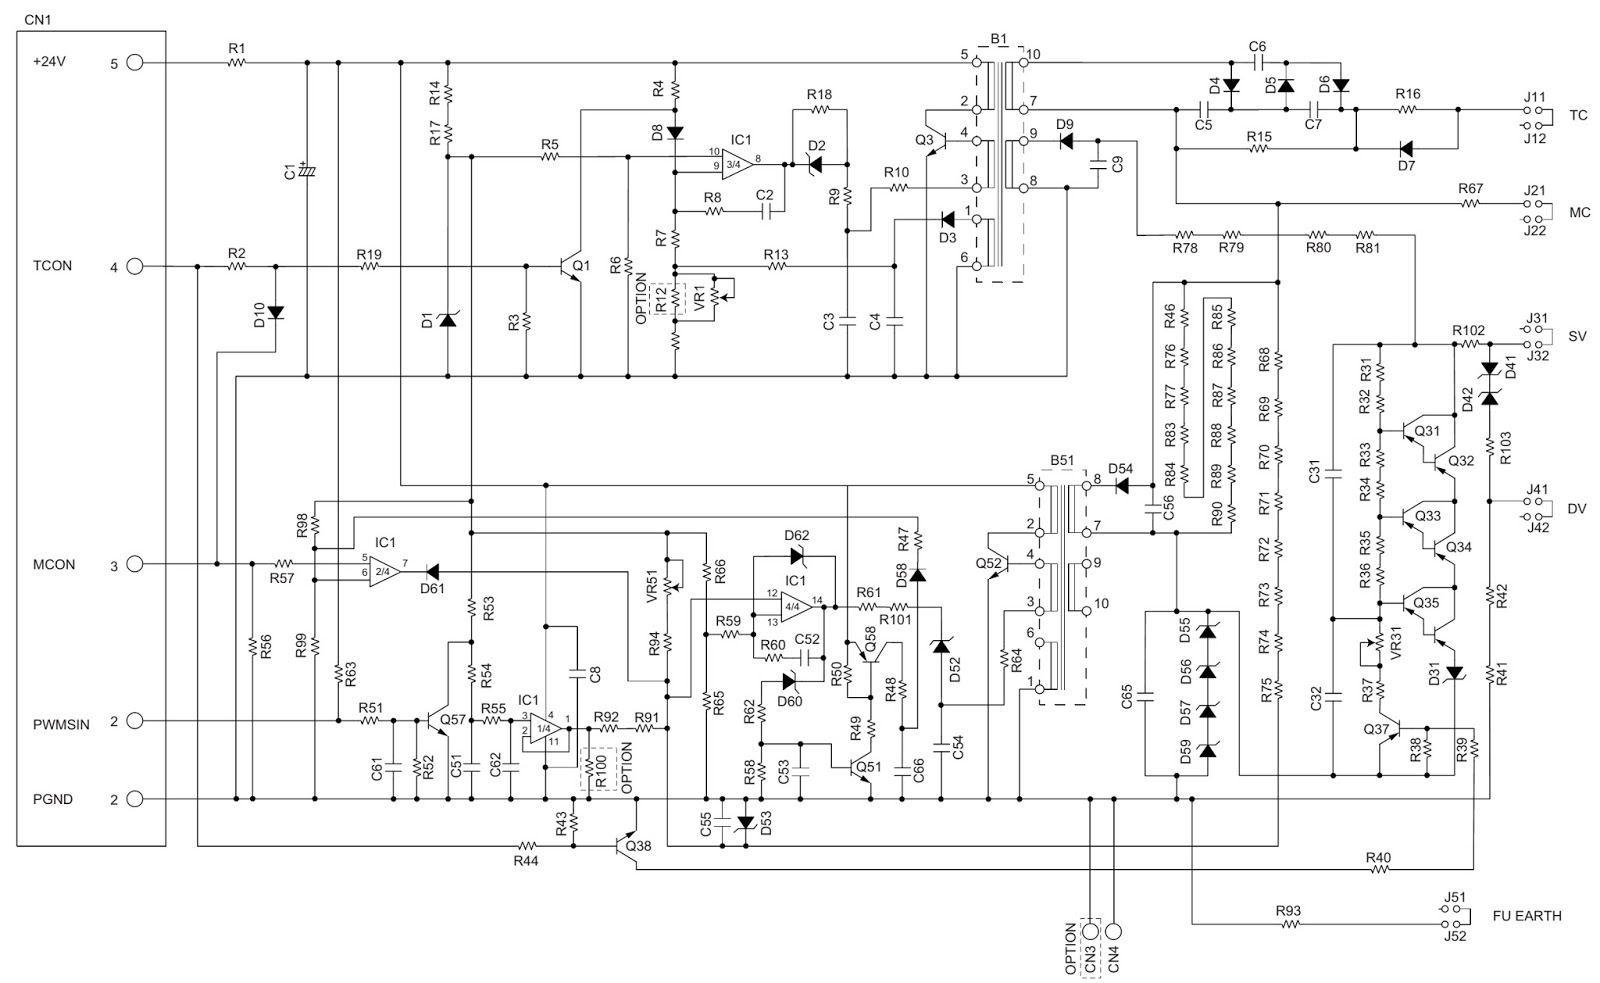 Schematic Diagram Wireless Printer Auto Electrical Wiring Usbprintershareswitchcircuitdiagramjpg Am 300de 400 Sharp Digital Copier